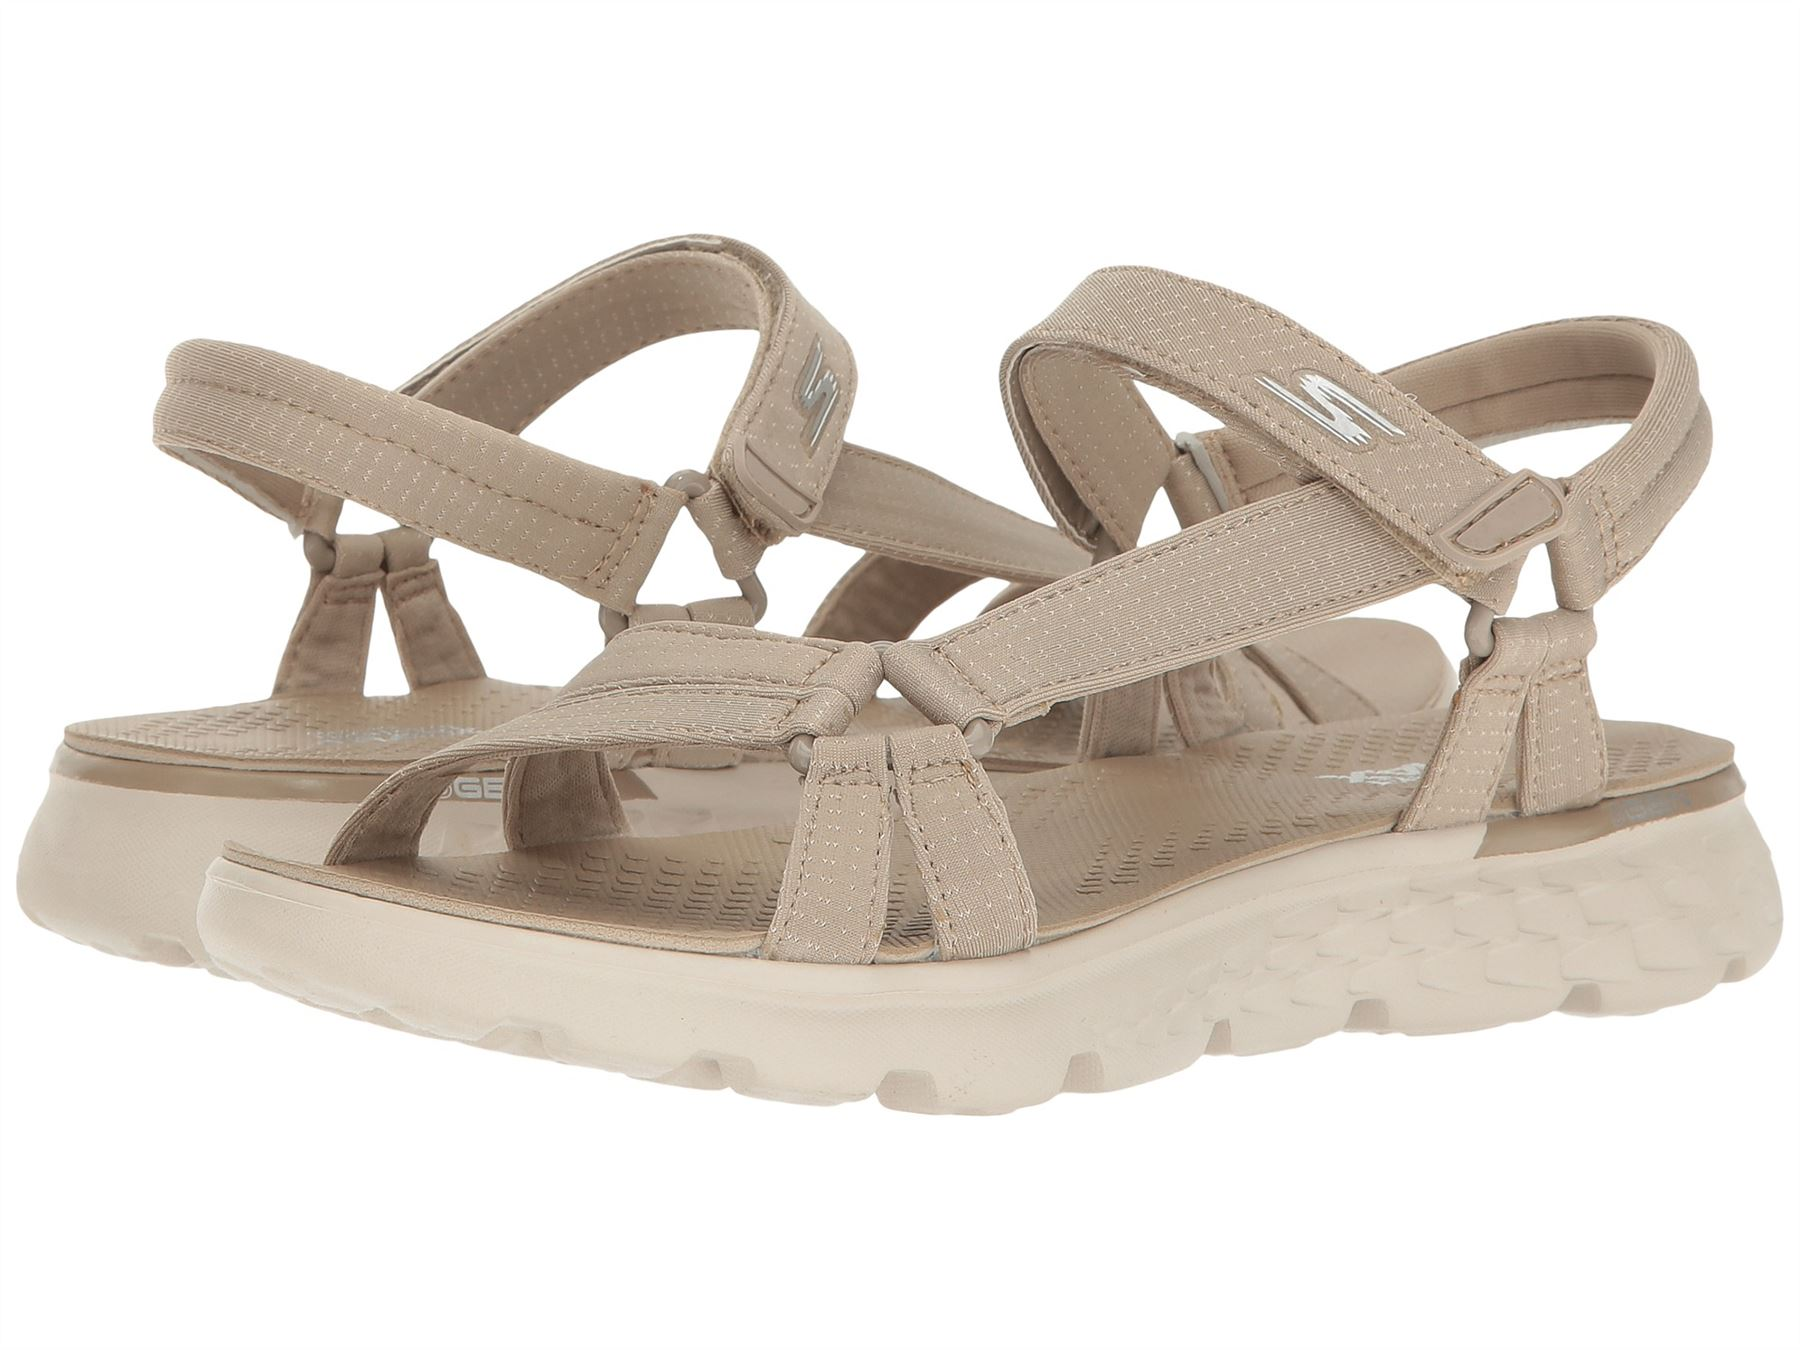 267f21f1ff91 Skechers Performance Women s On The GO 400 Radiance Sandals